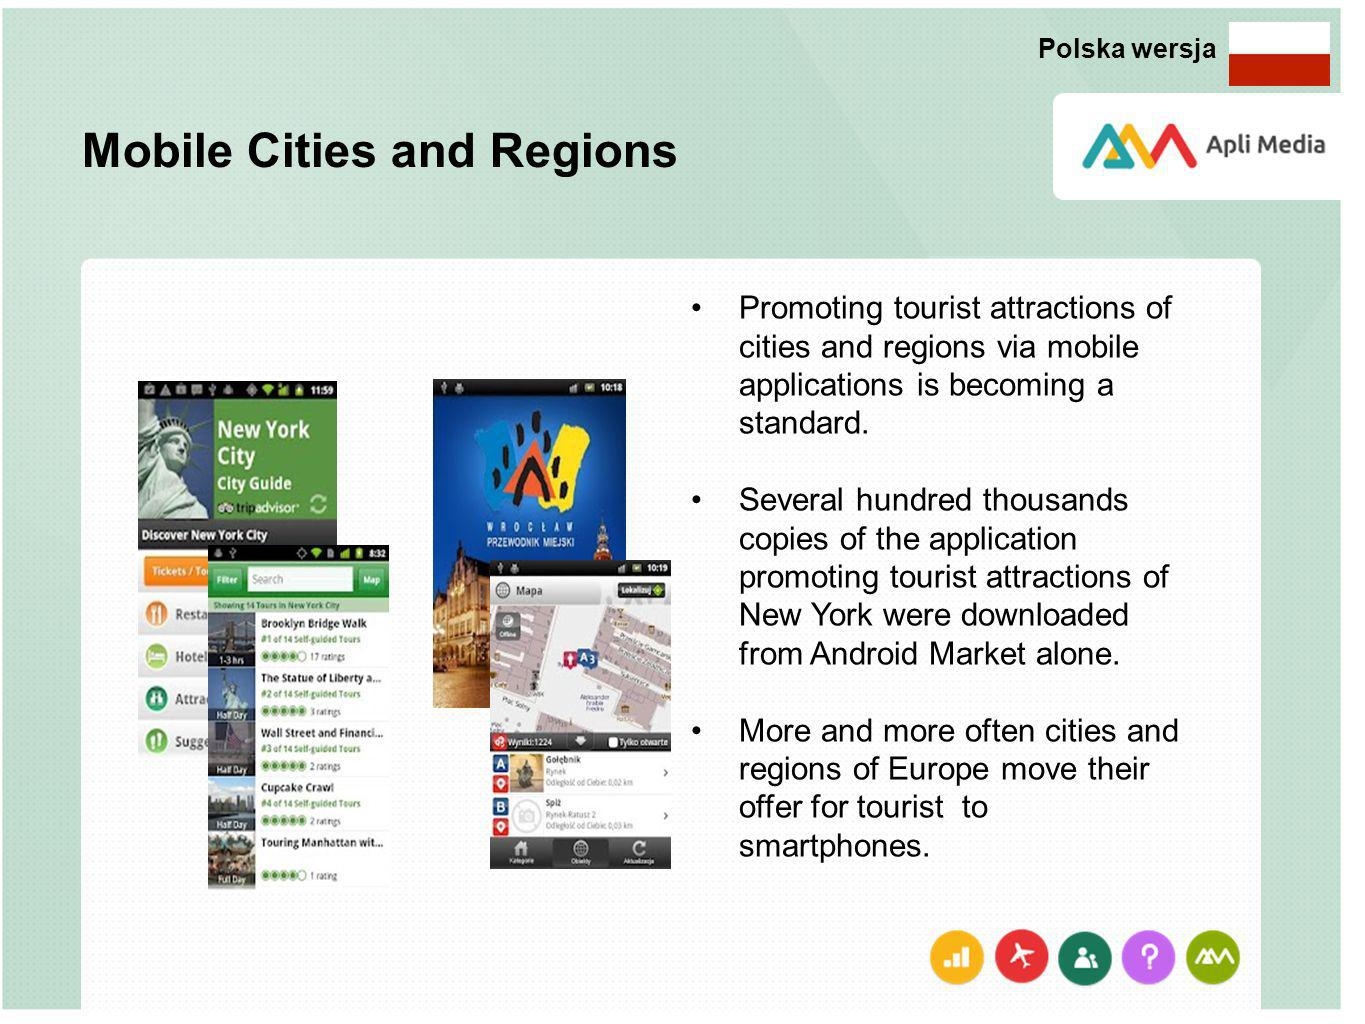 Mobile Cities and Regions Promoting tourist attractions of cities and regions via mobile applications is becoming a standard.